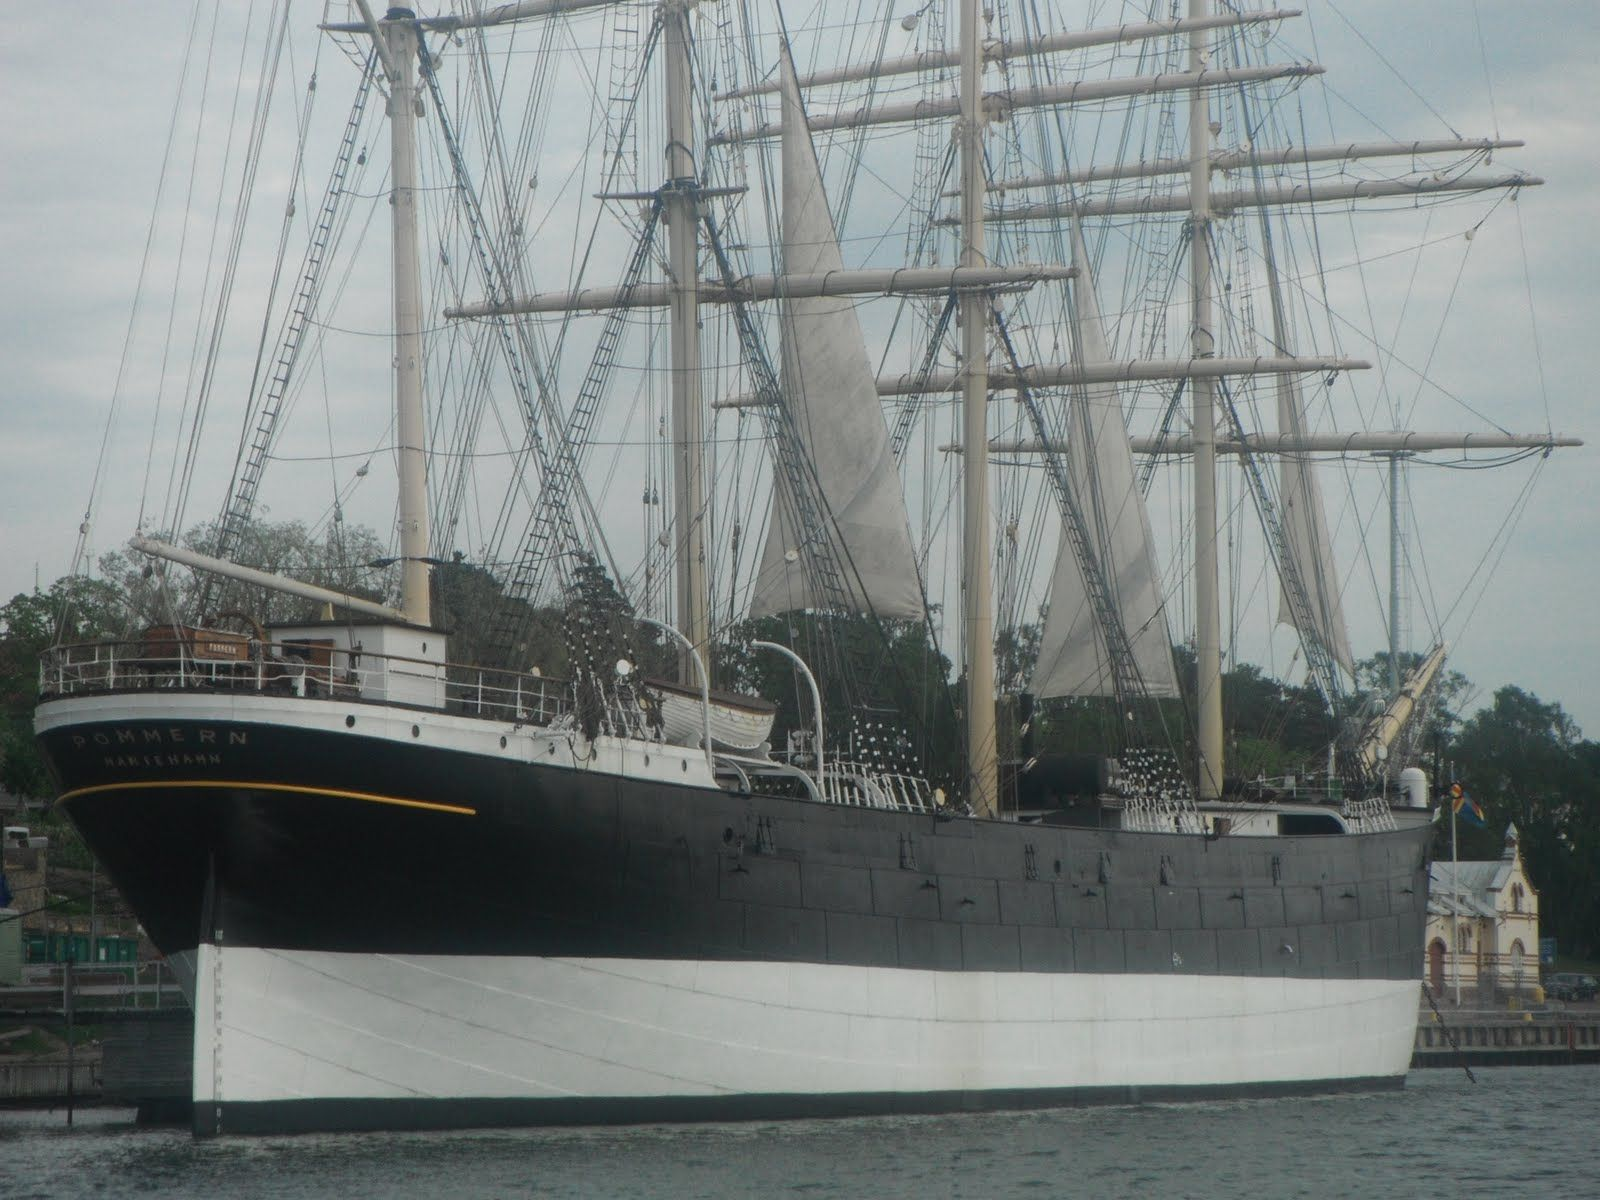 The POMMERN now a great museum beautifully maintained & one of the